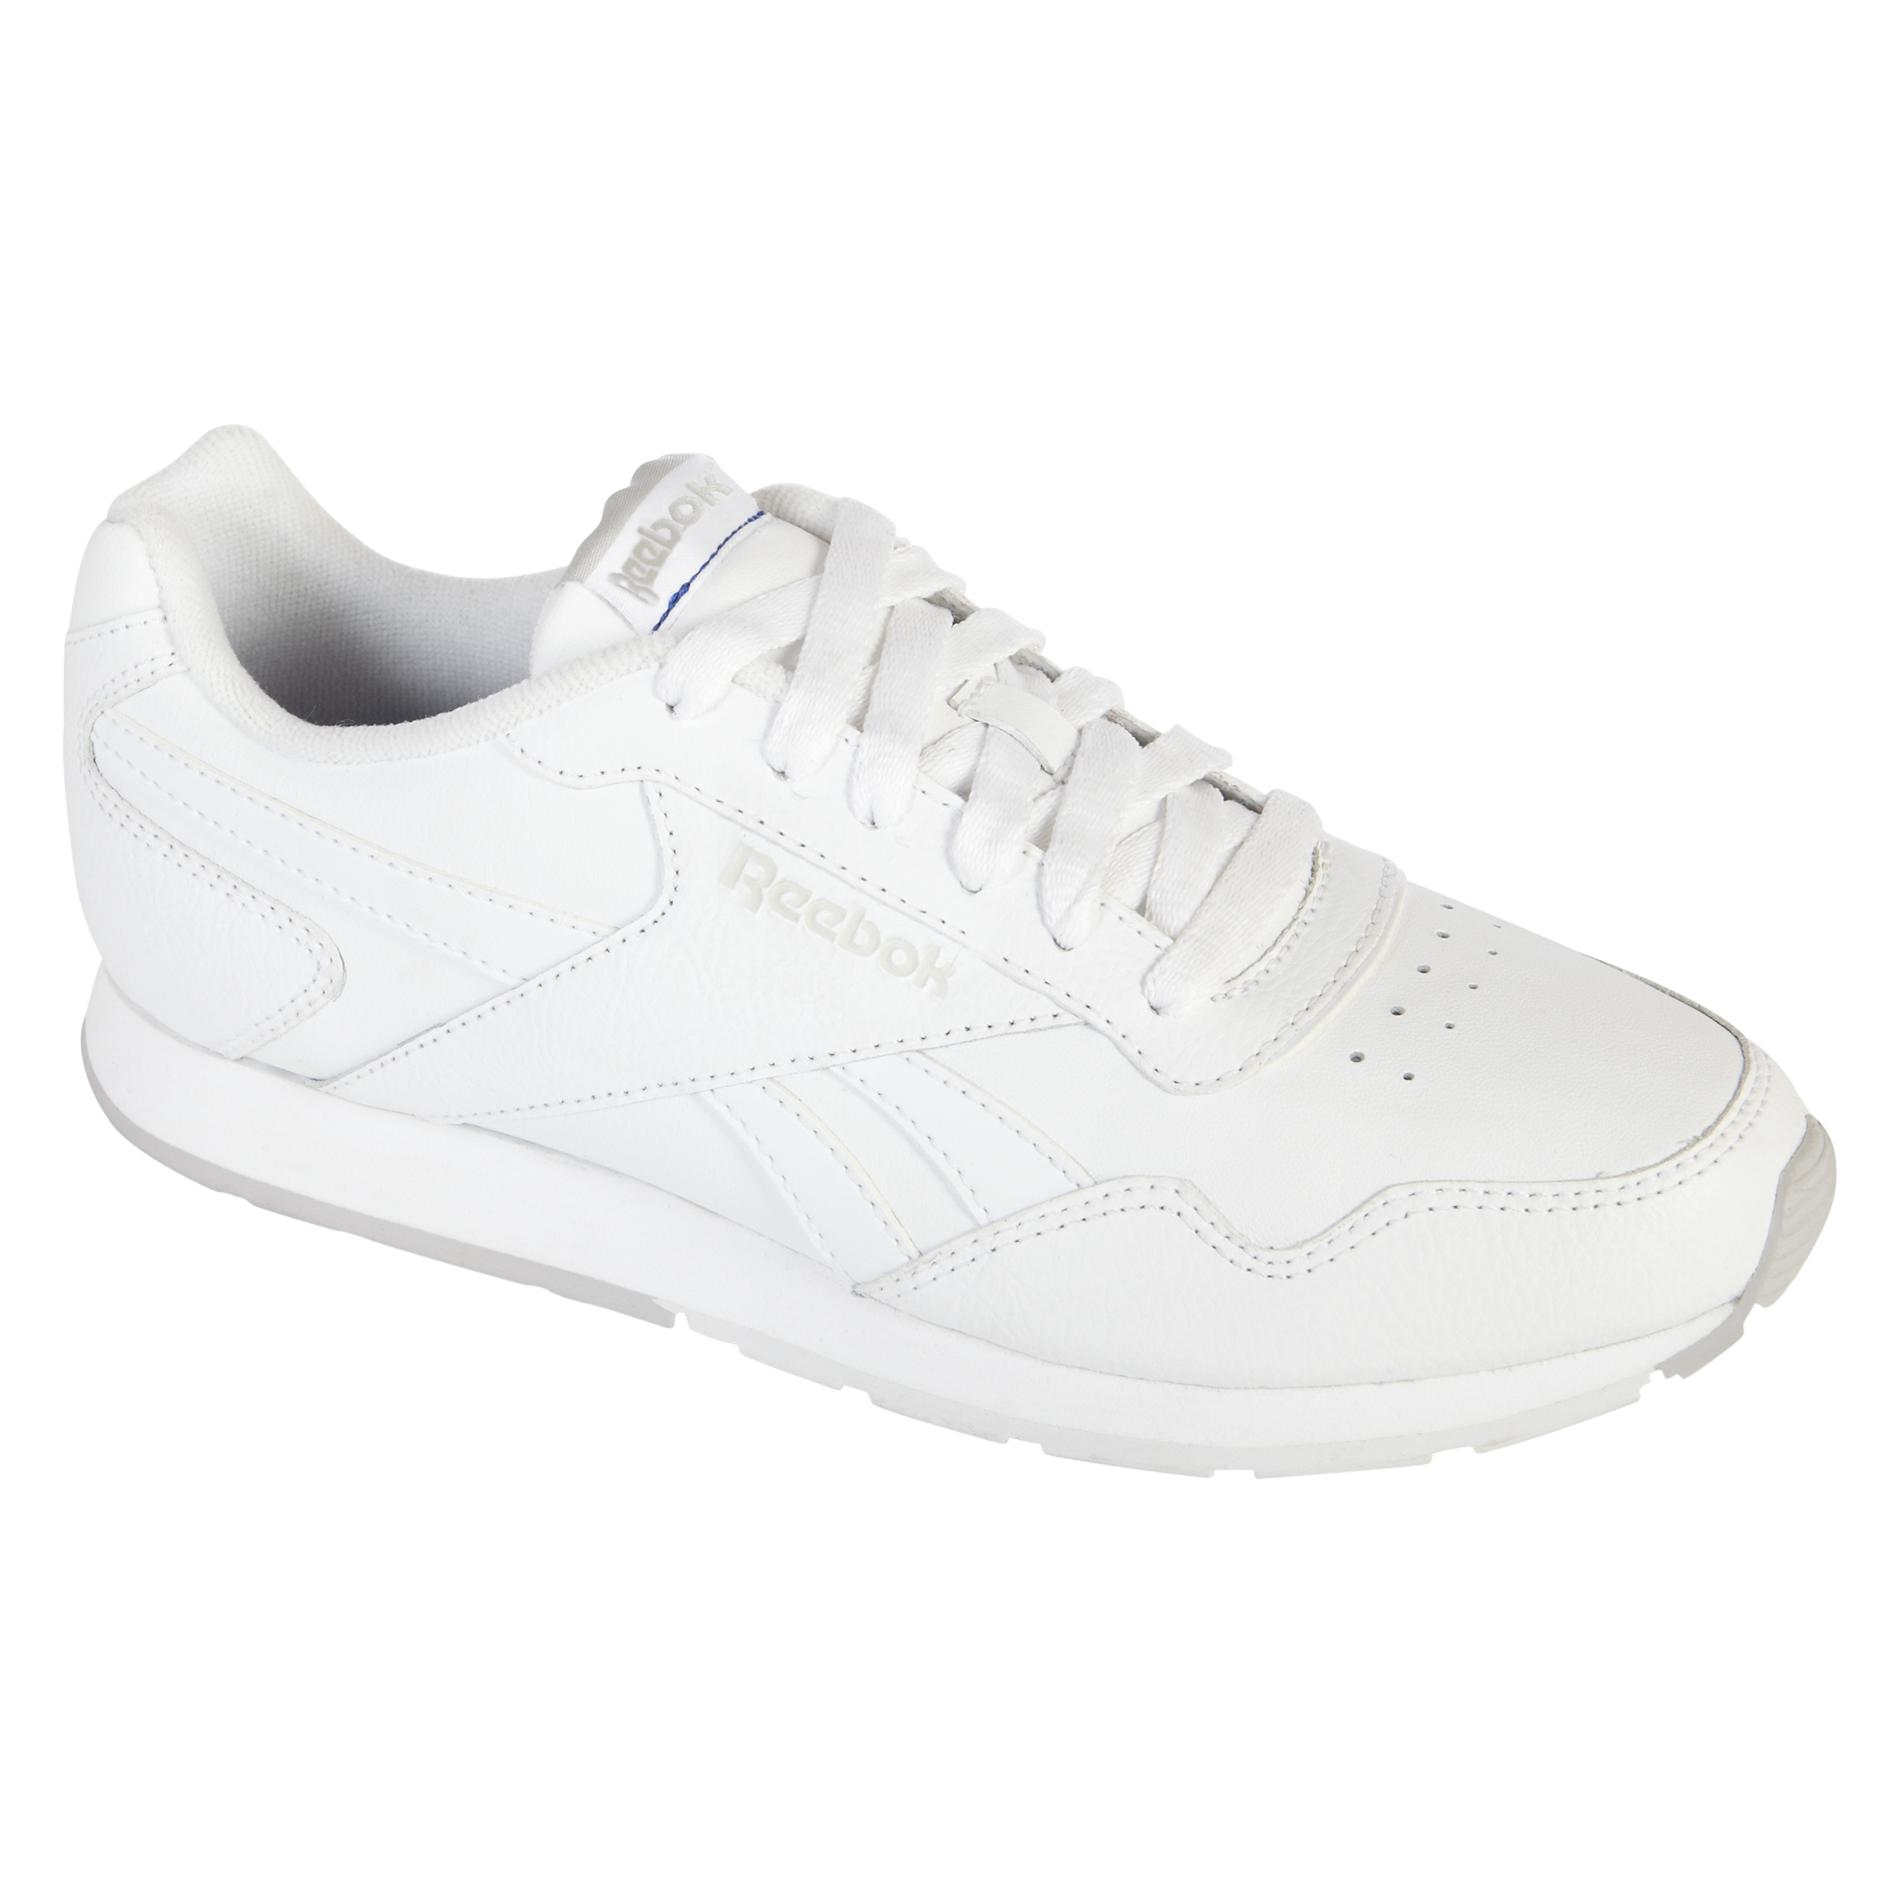 reebok tennis shoes